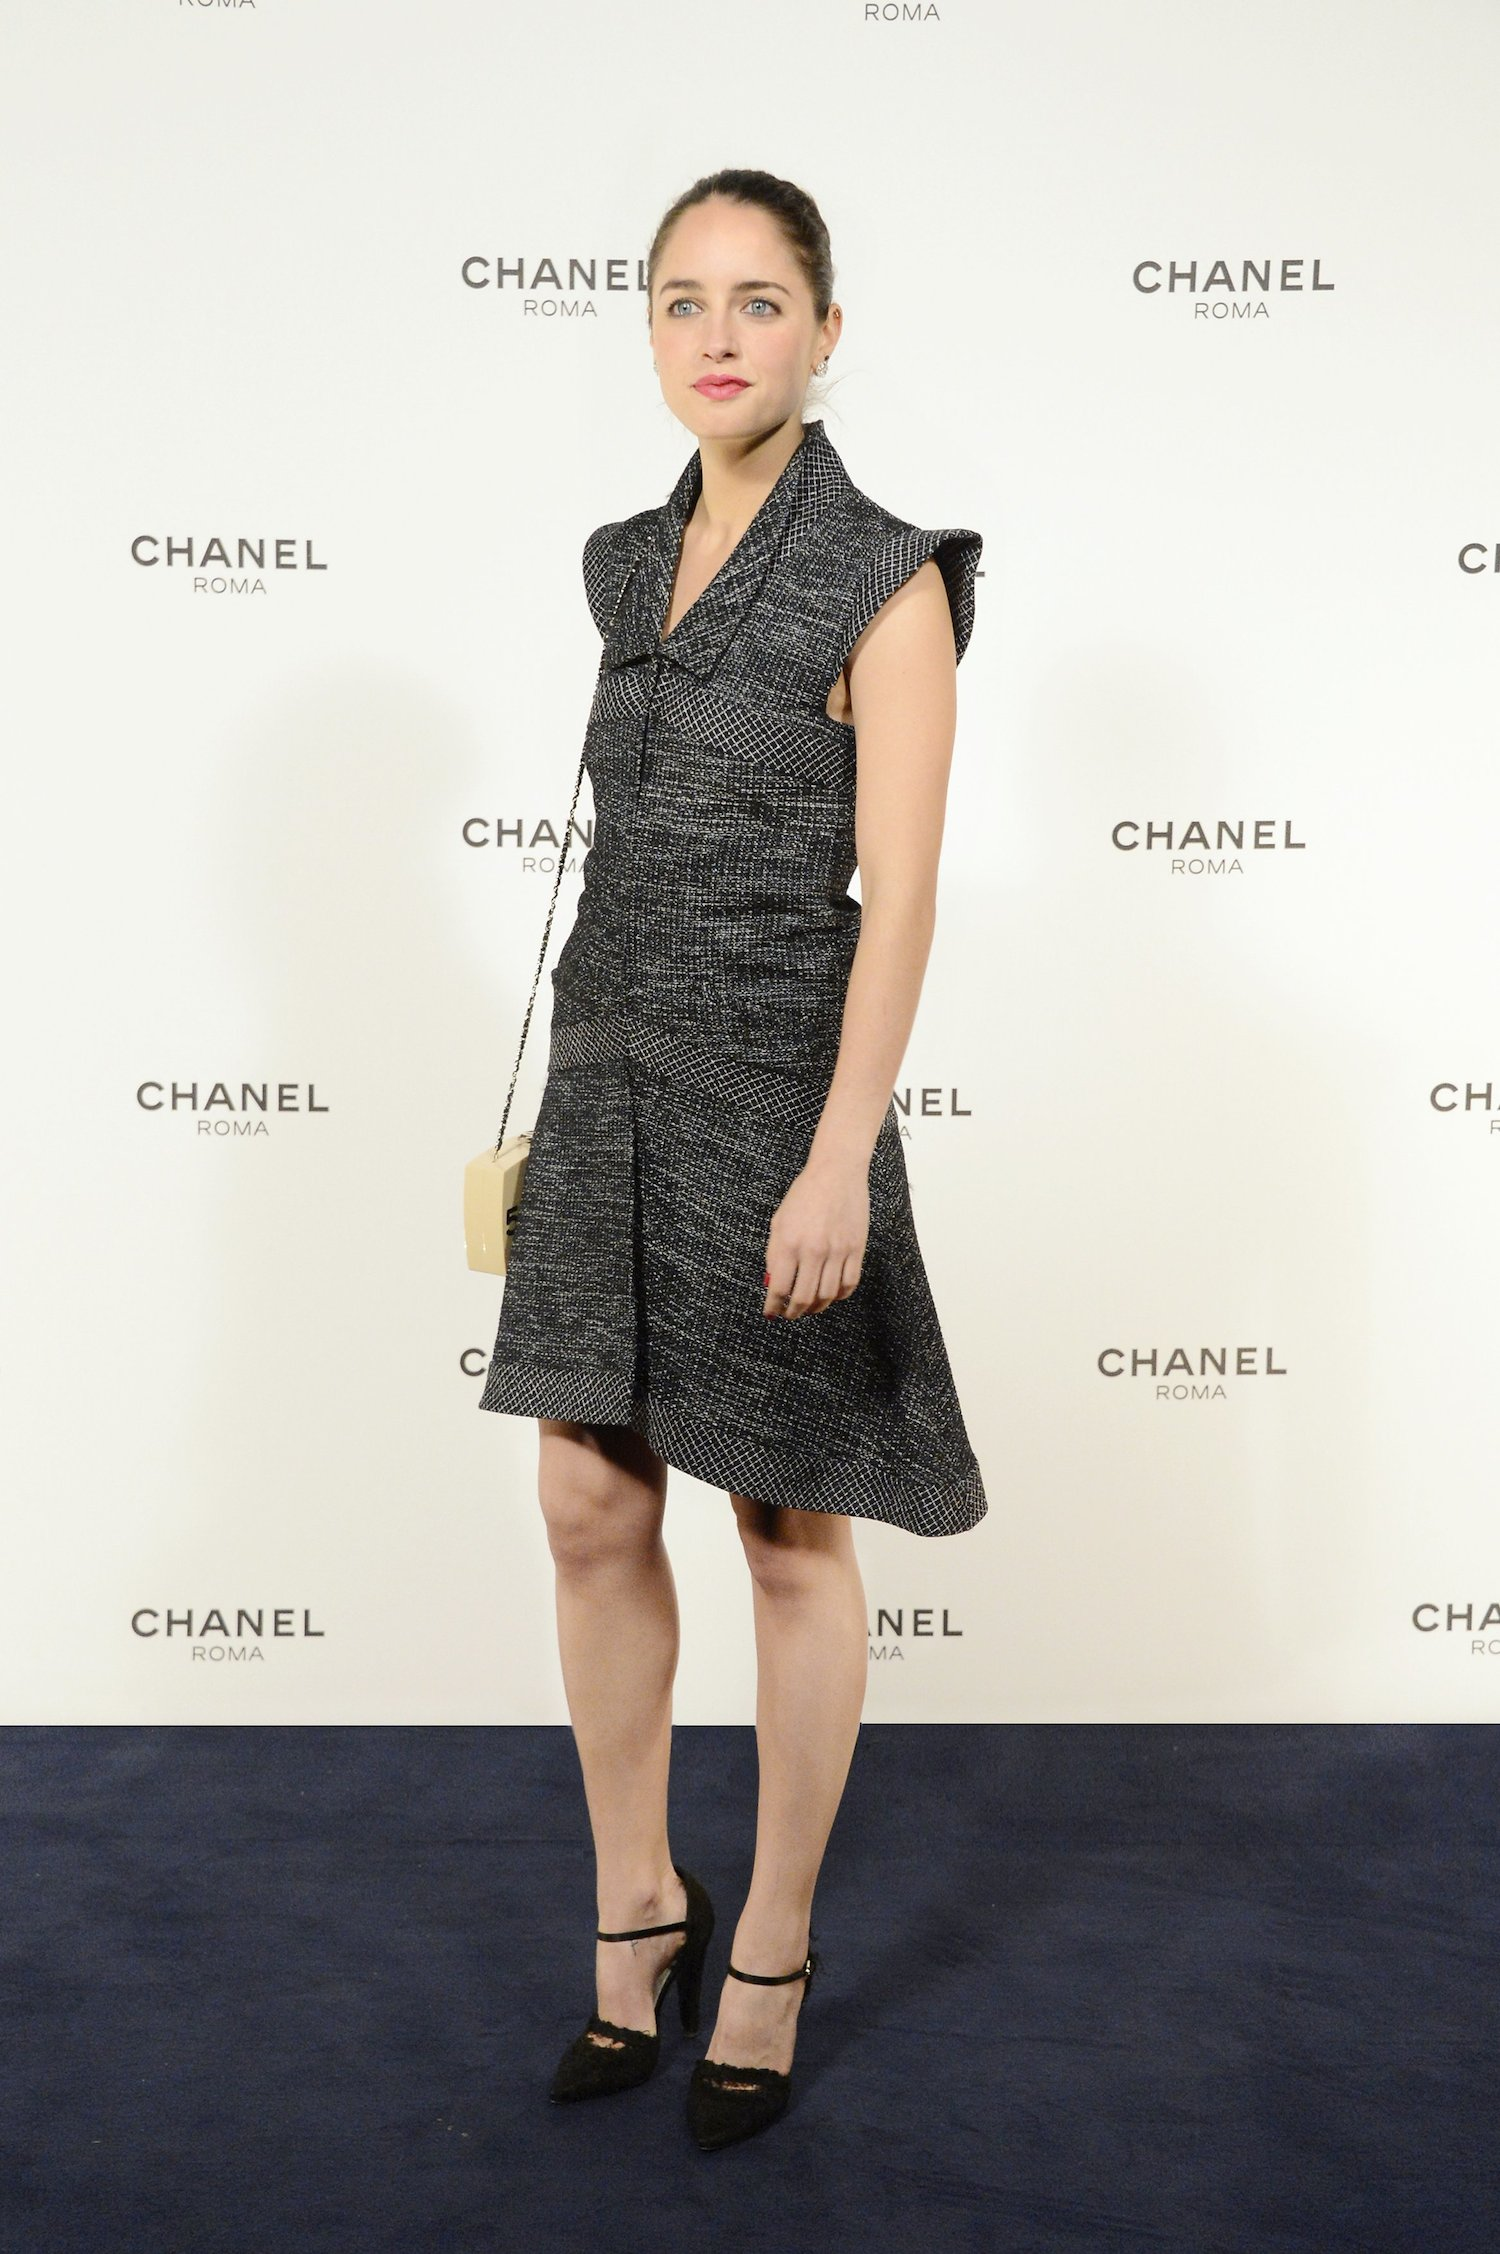 Chanel Rome Party Opening - Matilde Gioli